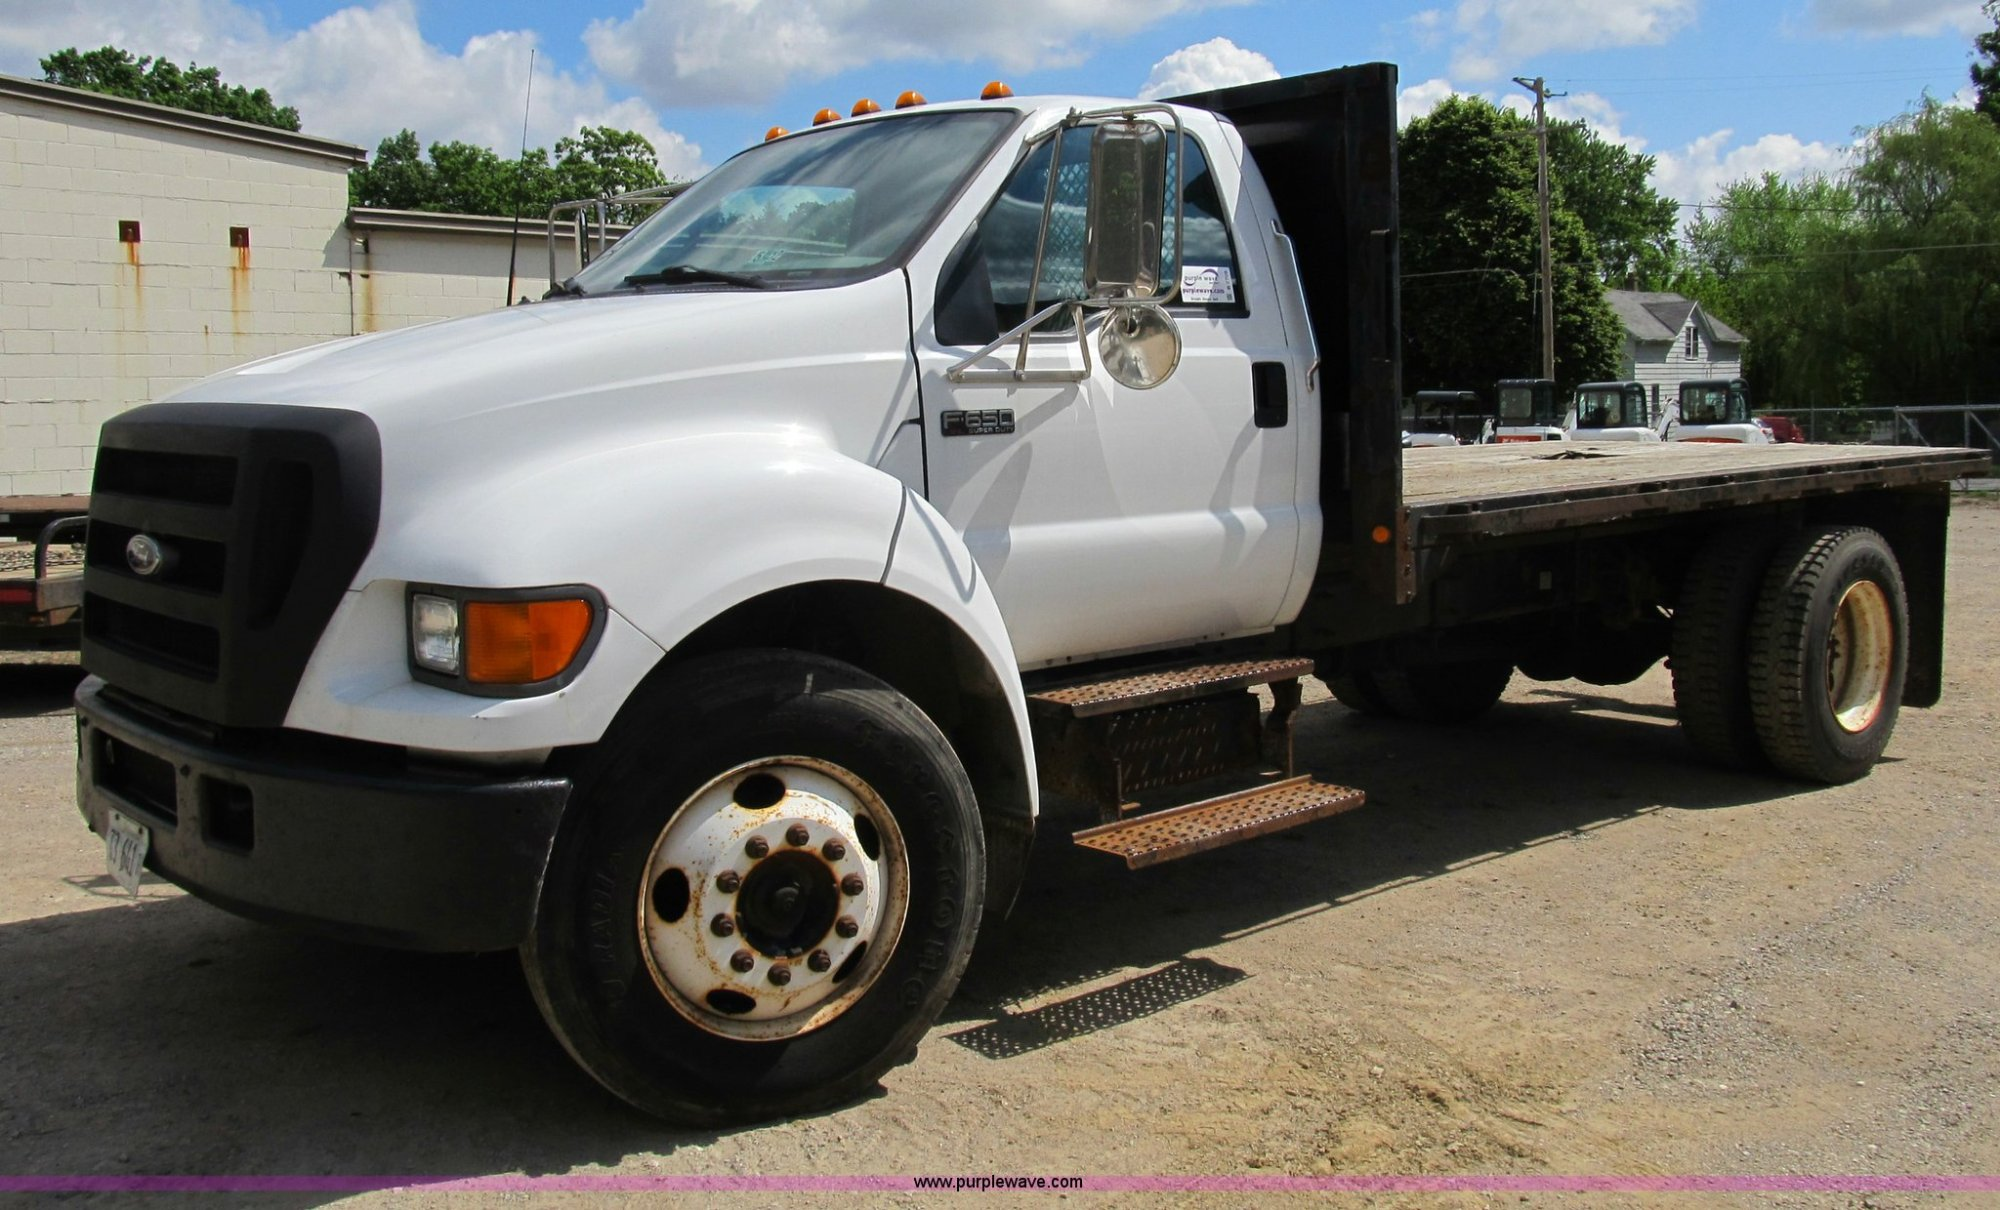 hight resolution of b2709 image for item b2709 2004 ford f650 xl super duty flat bed truck